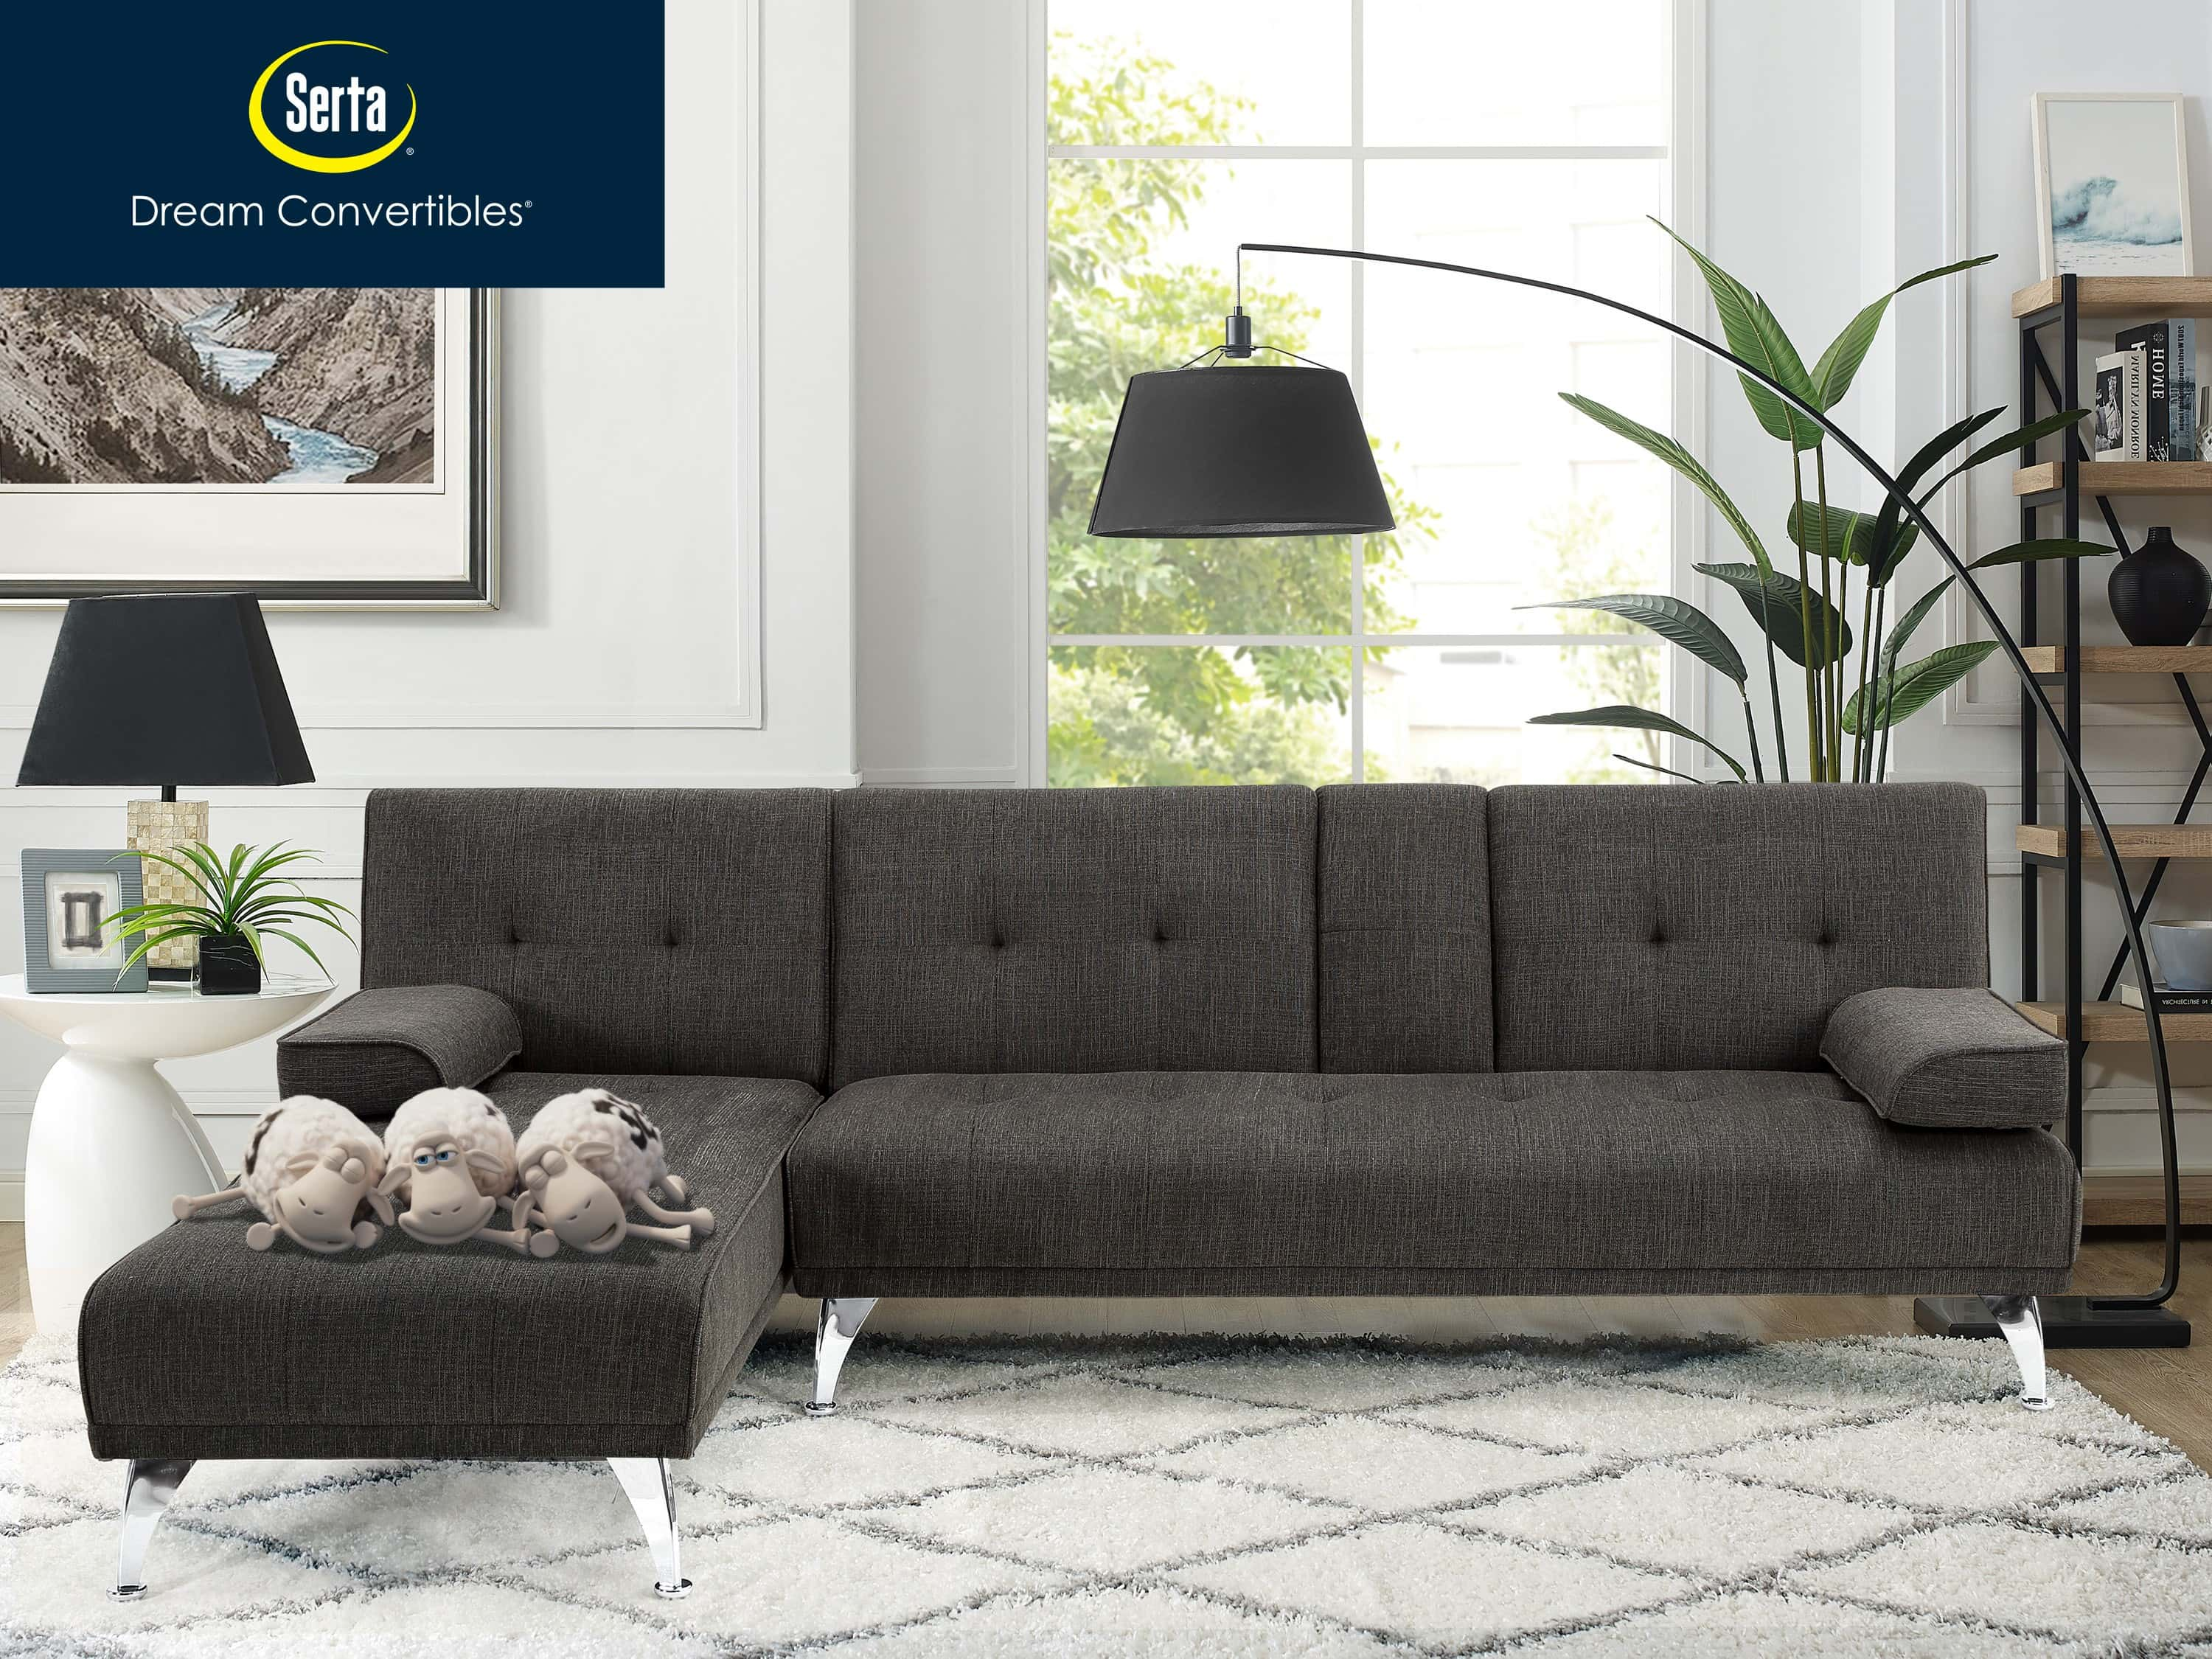 Serta Malibu Charcoal Convertible Sofa Bed By Lifestyle Solutions